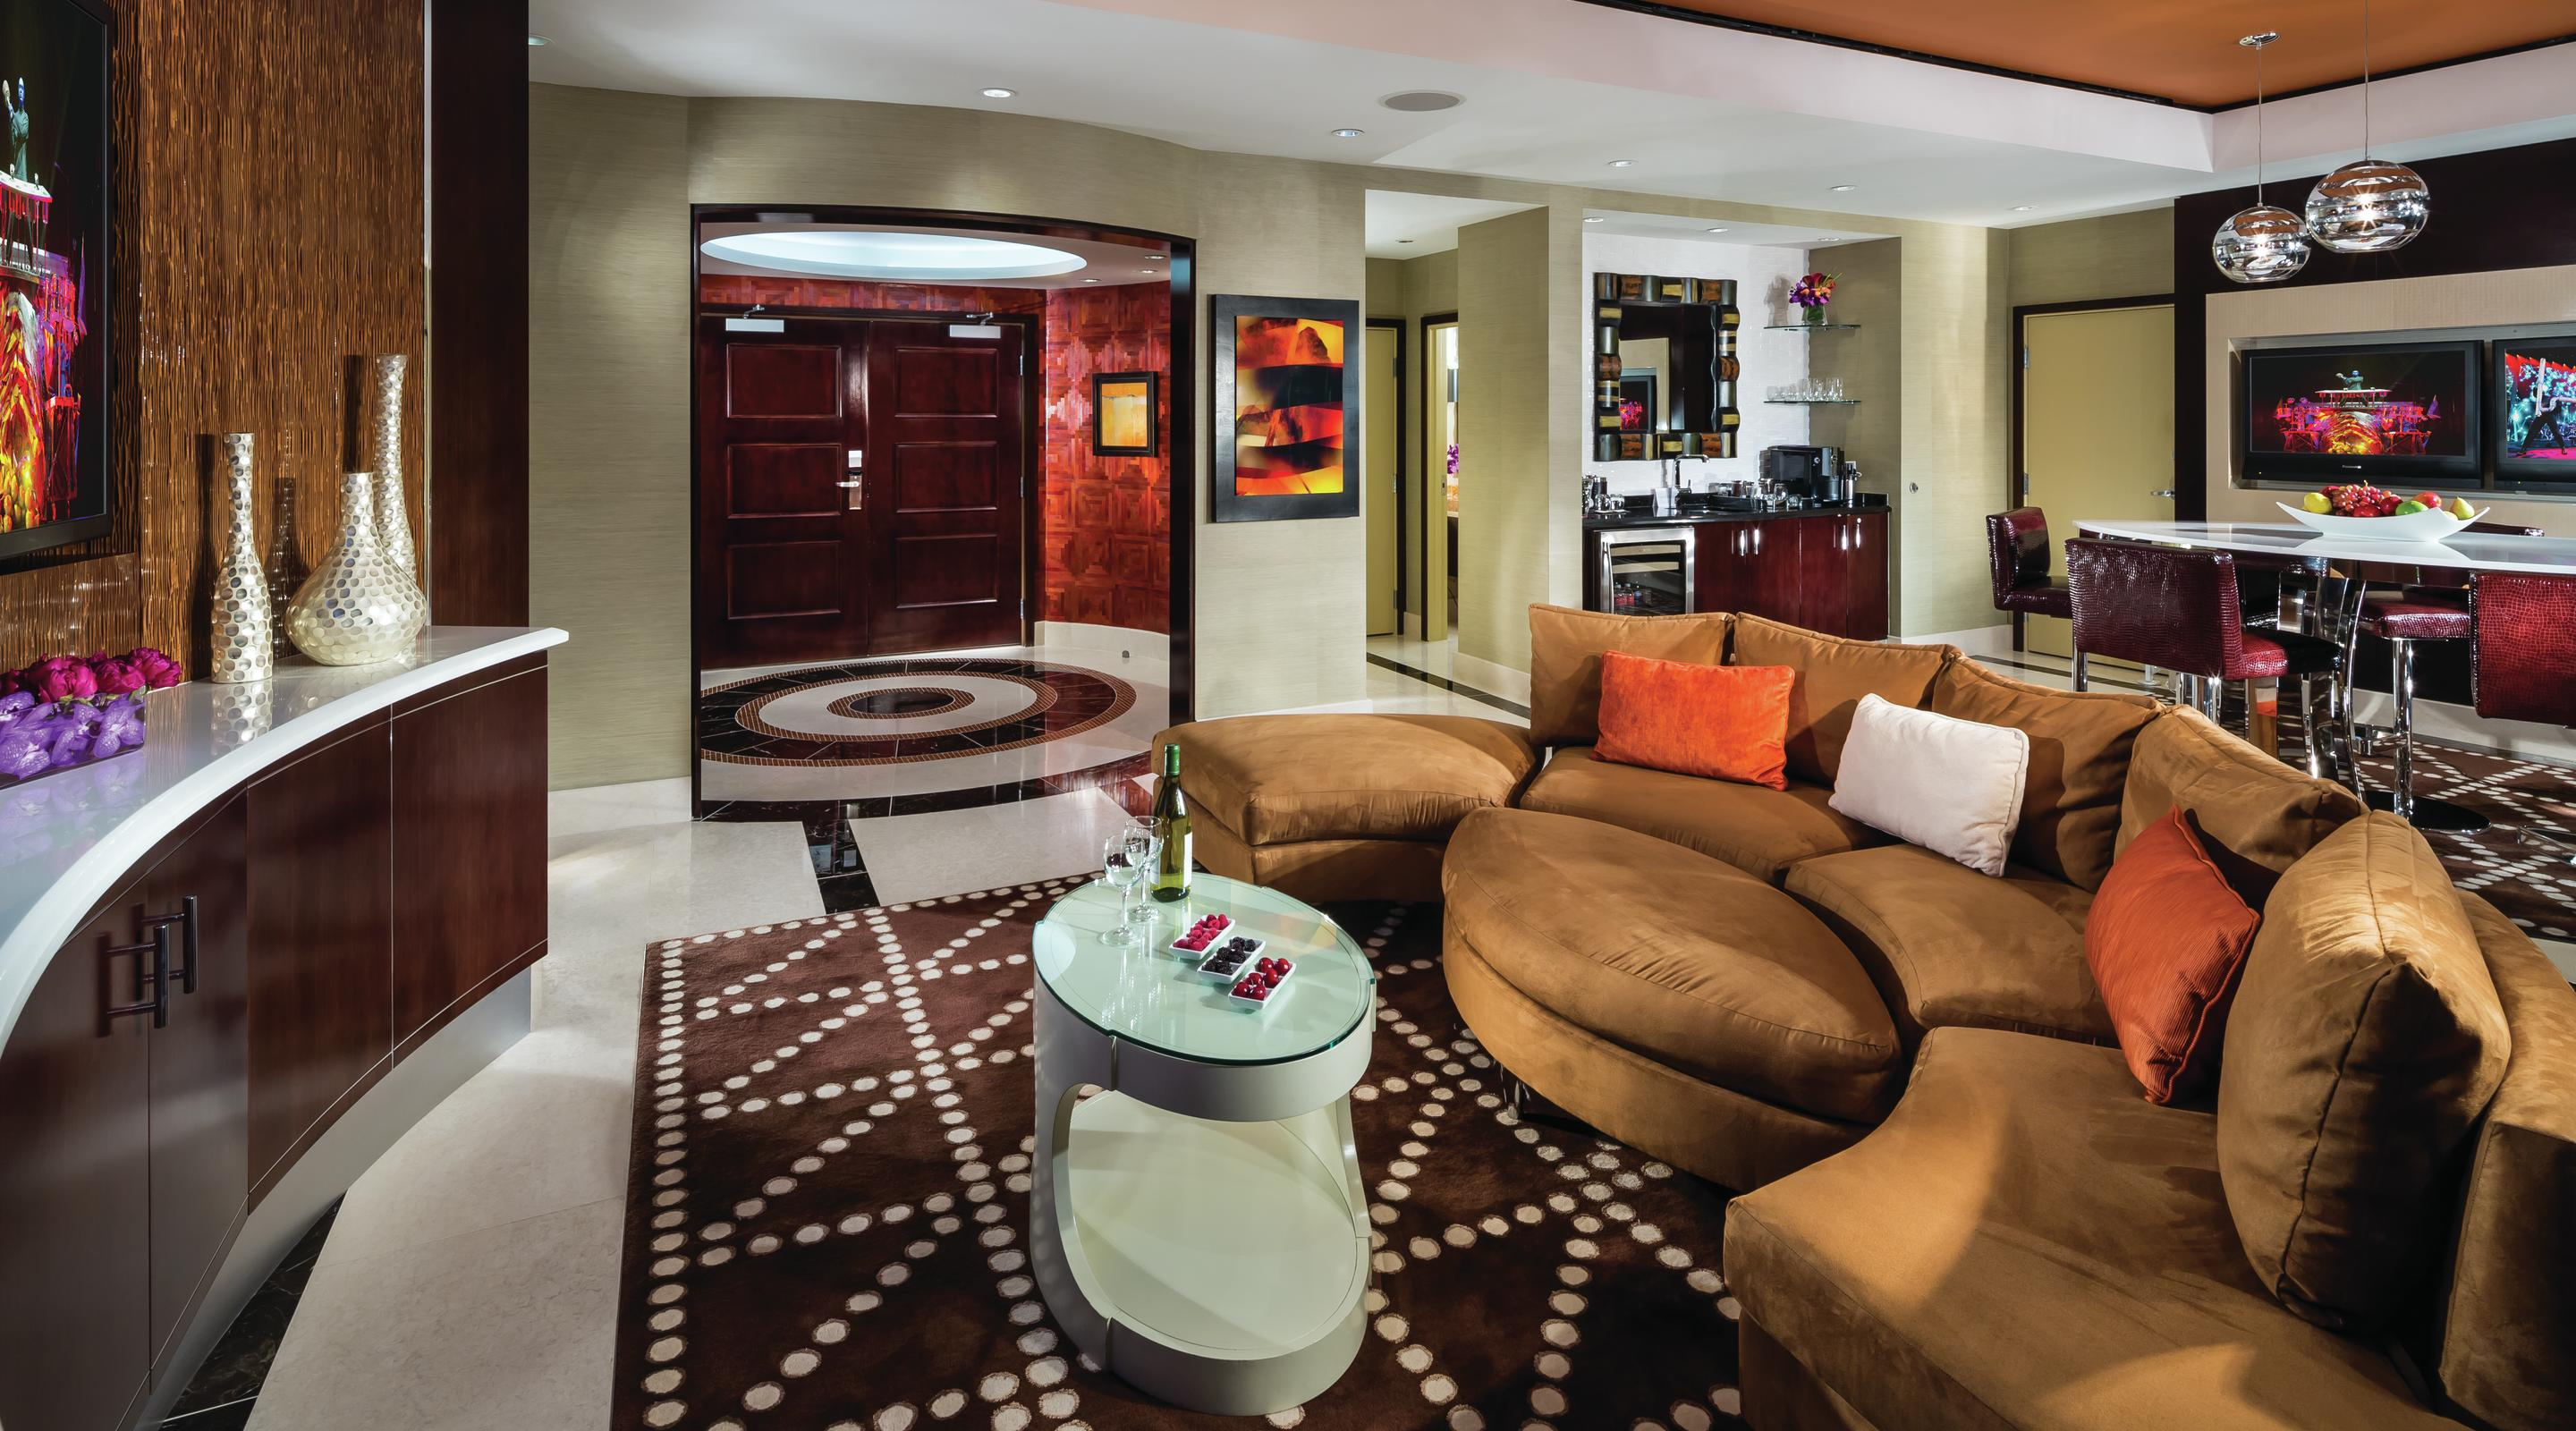 Las Vegas Suites Hotel32 Two Bedroom Penthouse Monte Carlo Resort And Casino Mgm Resorts